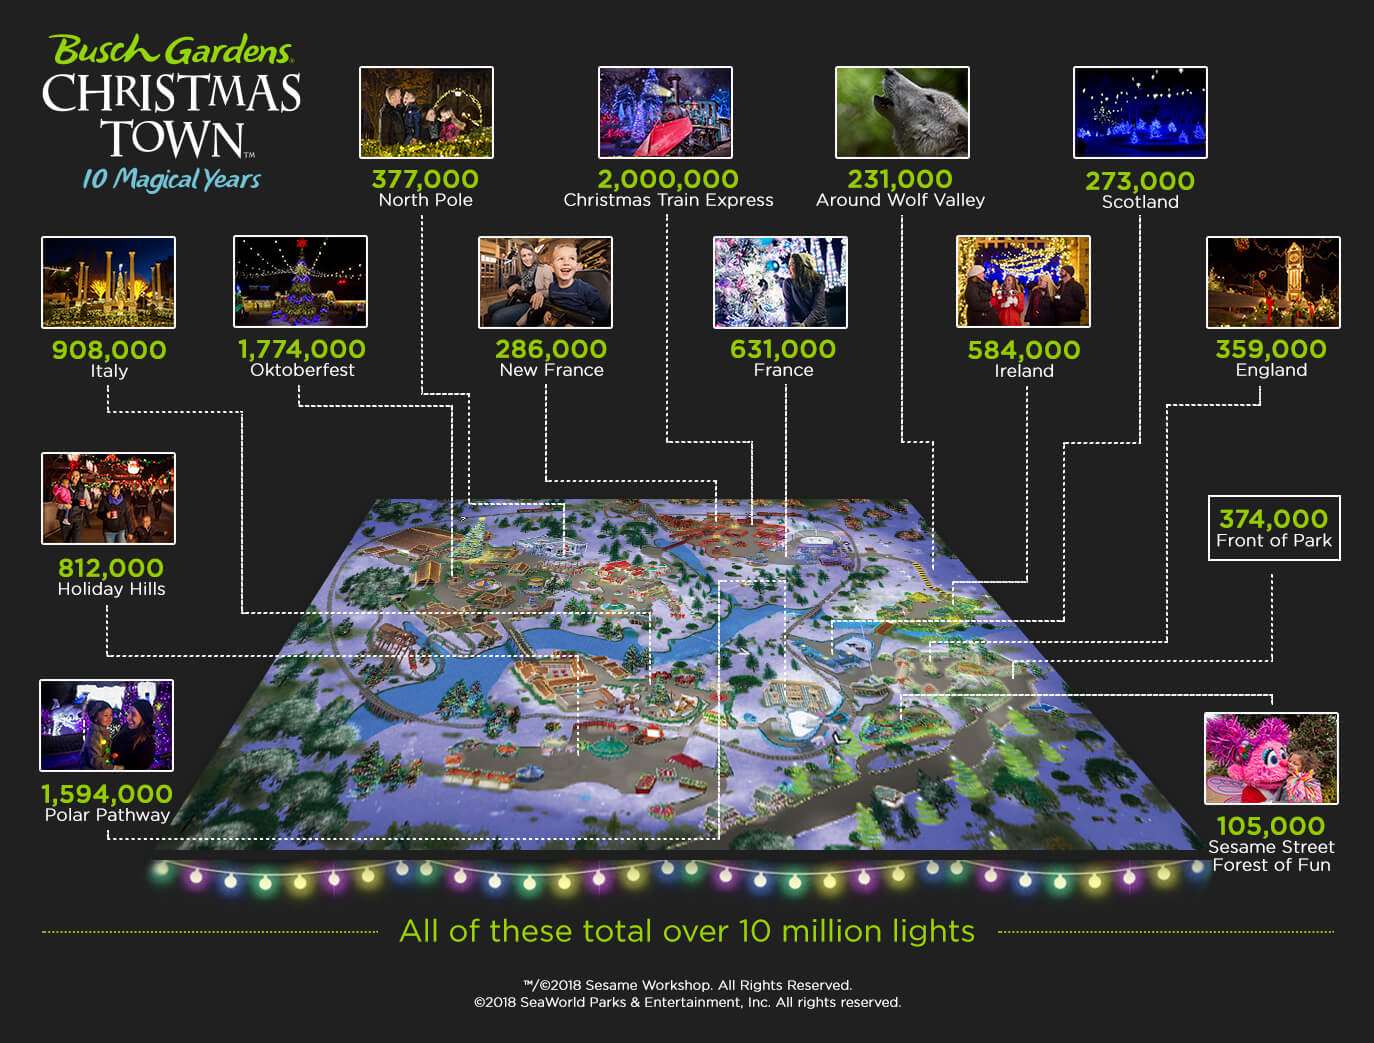 Where to see the lights at Christmas Town